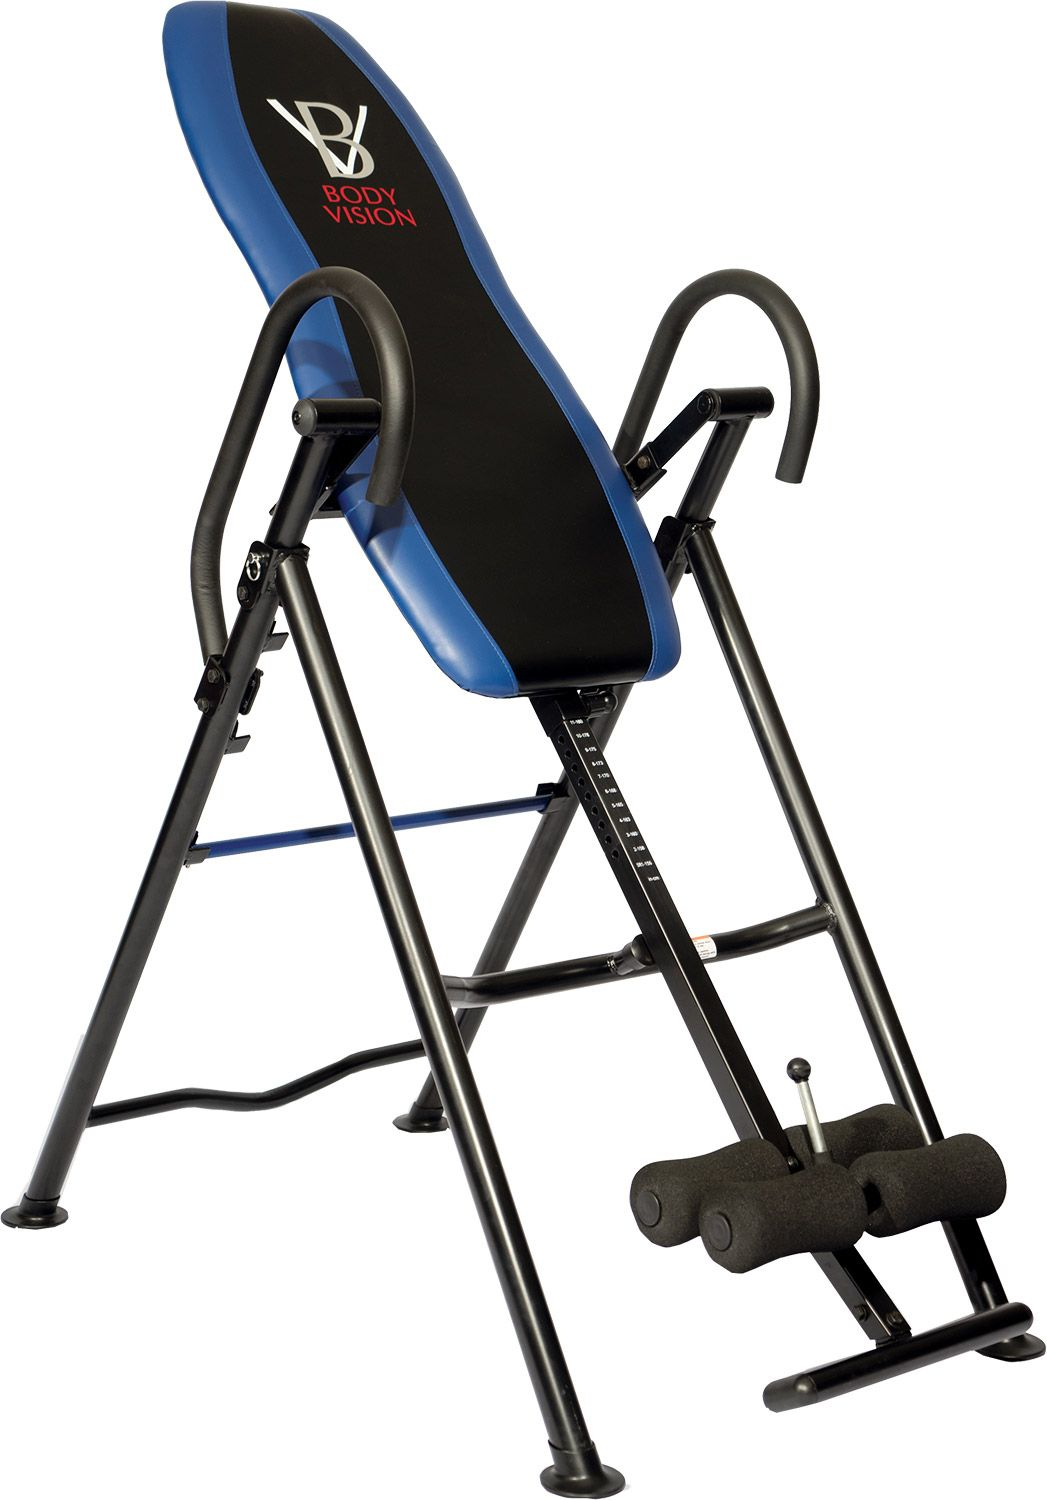 body vision it9400 inversion table   dick's sporting goods